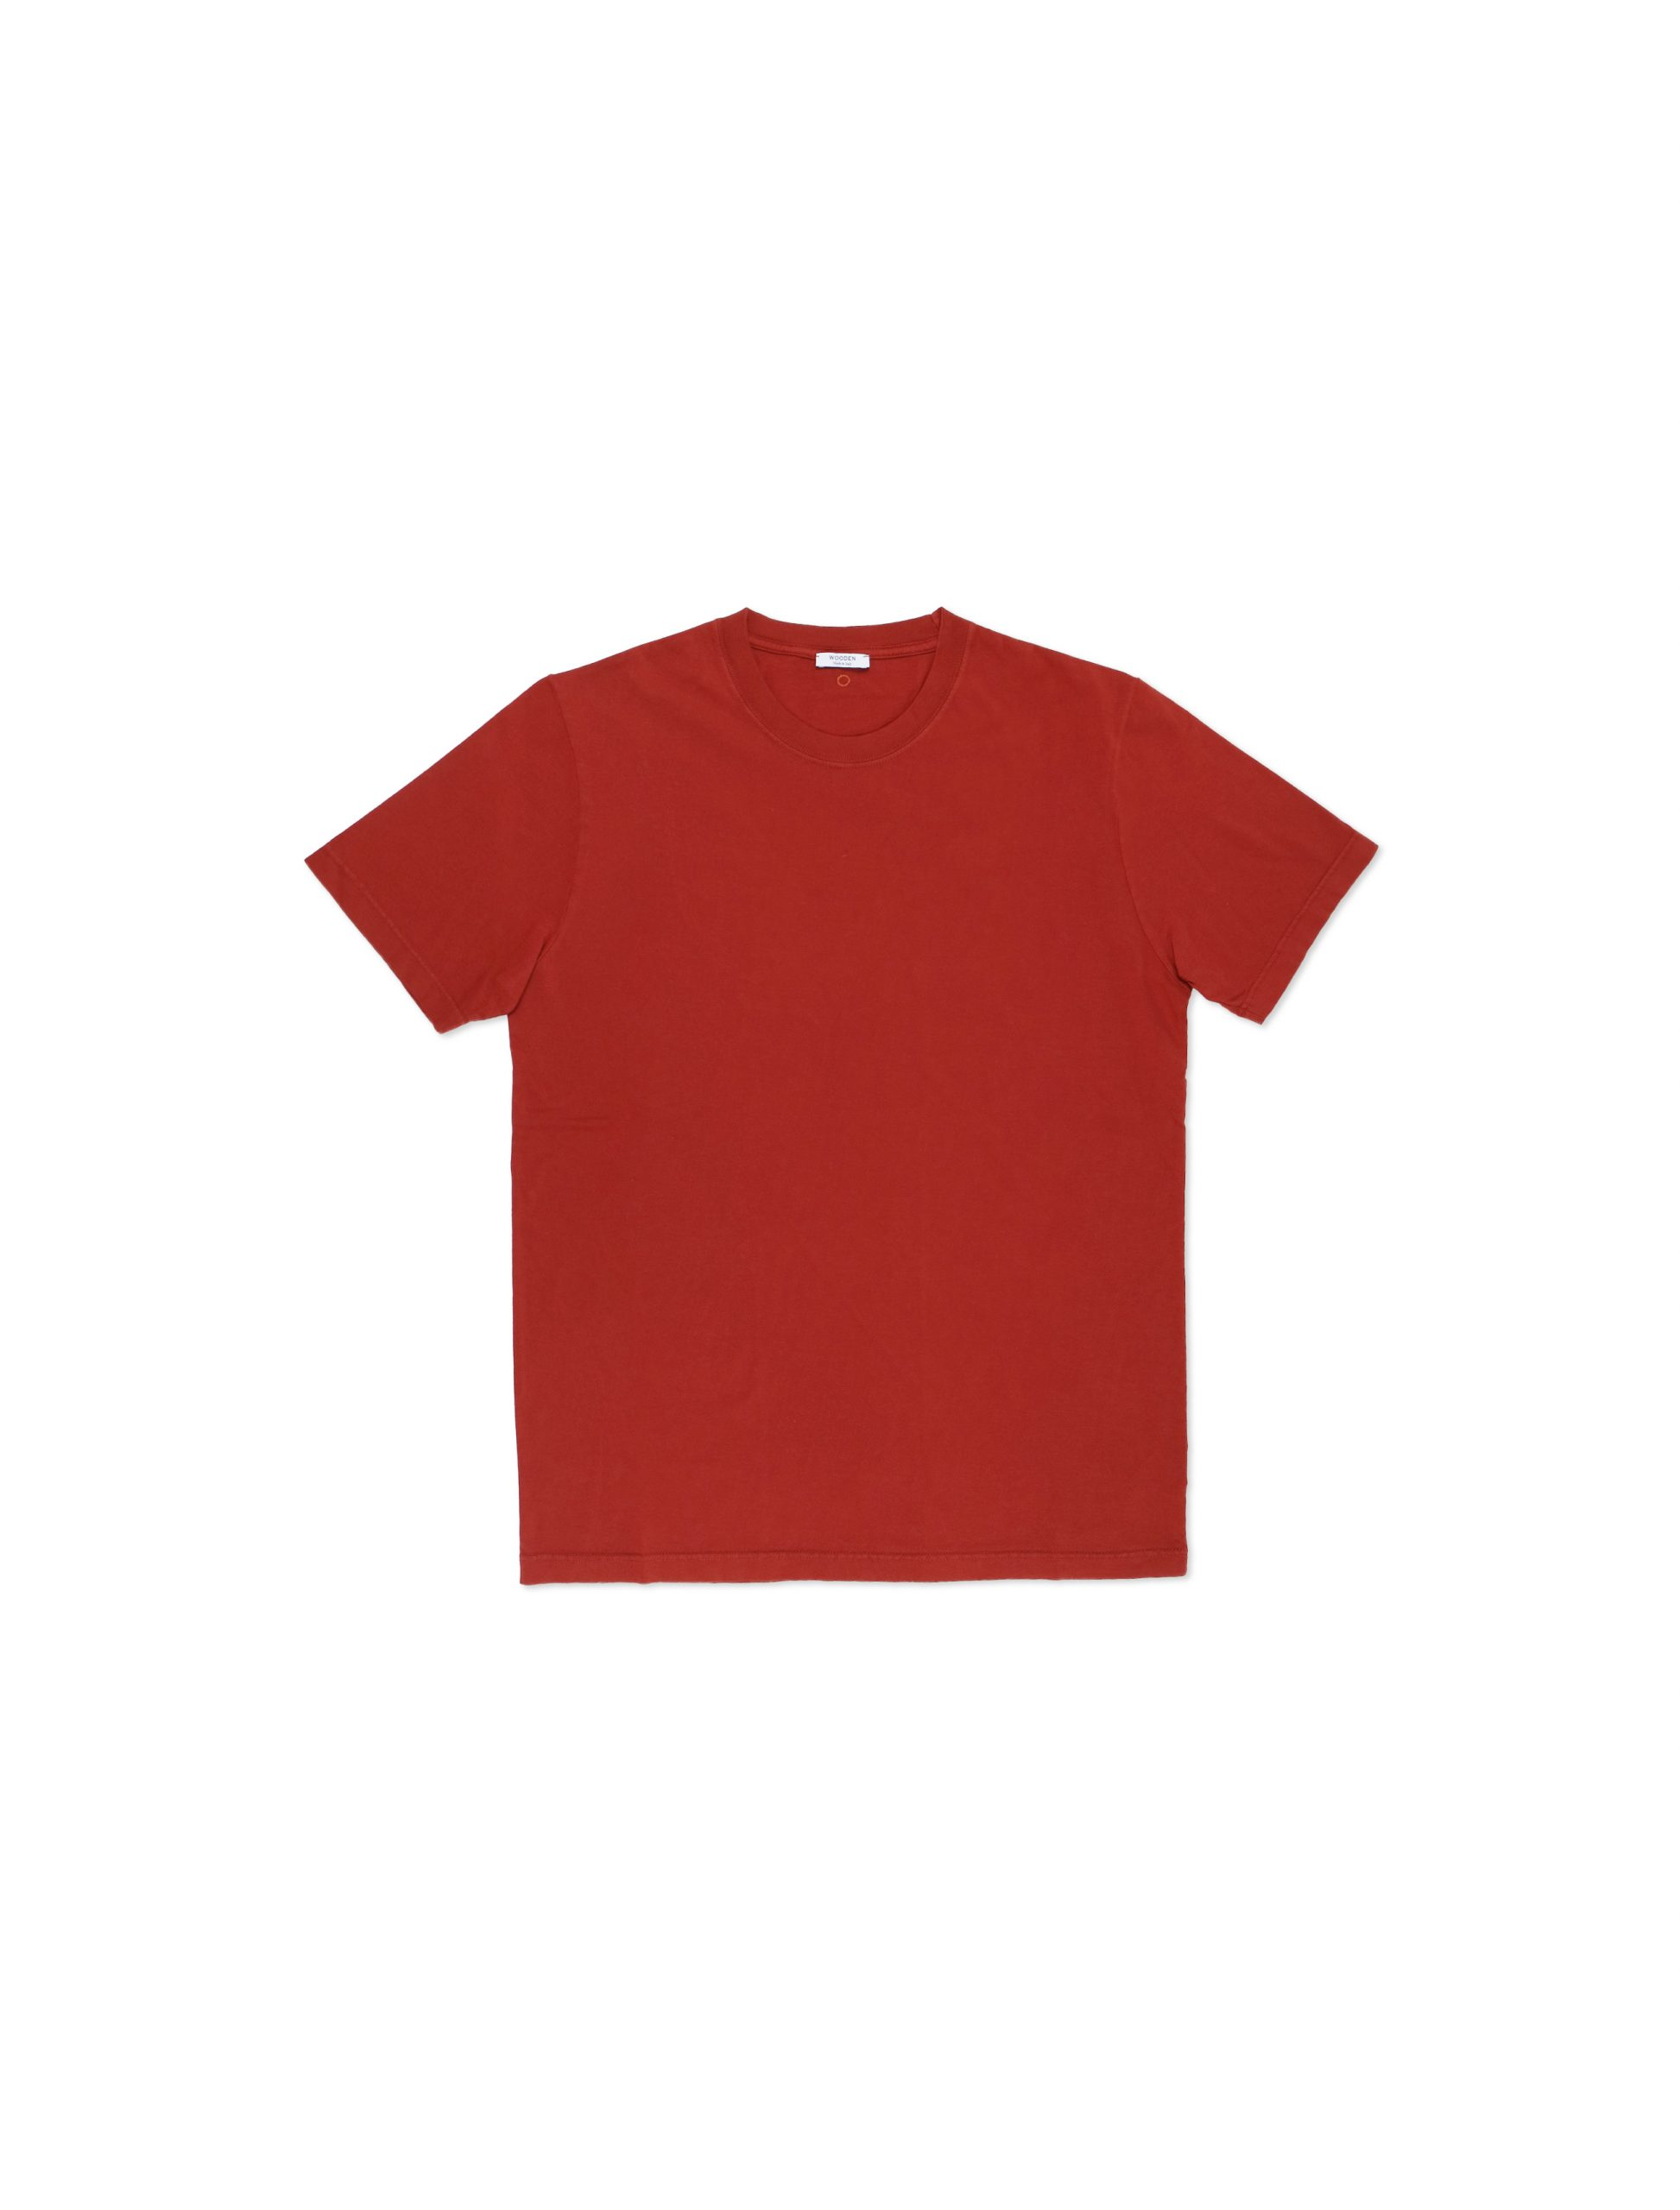 T-Shirt Rust | Wooden Store